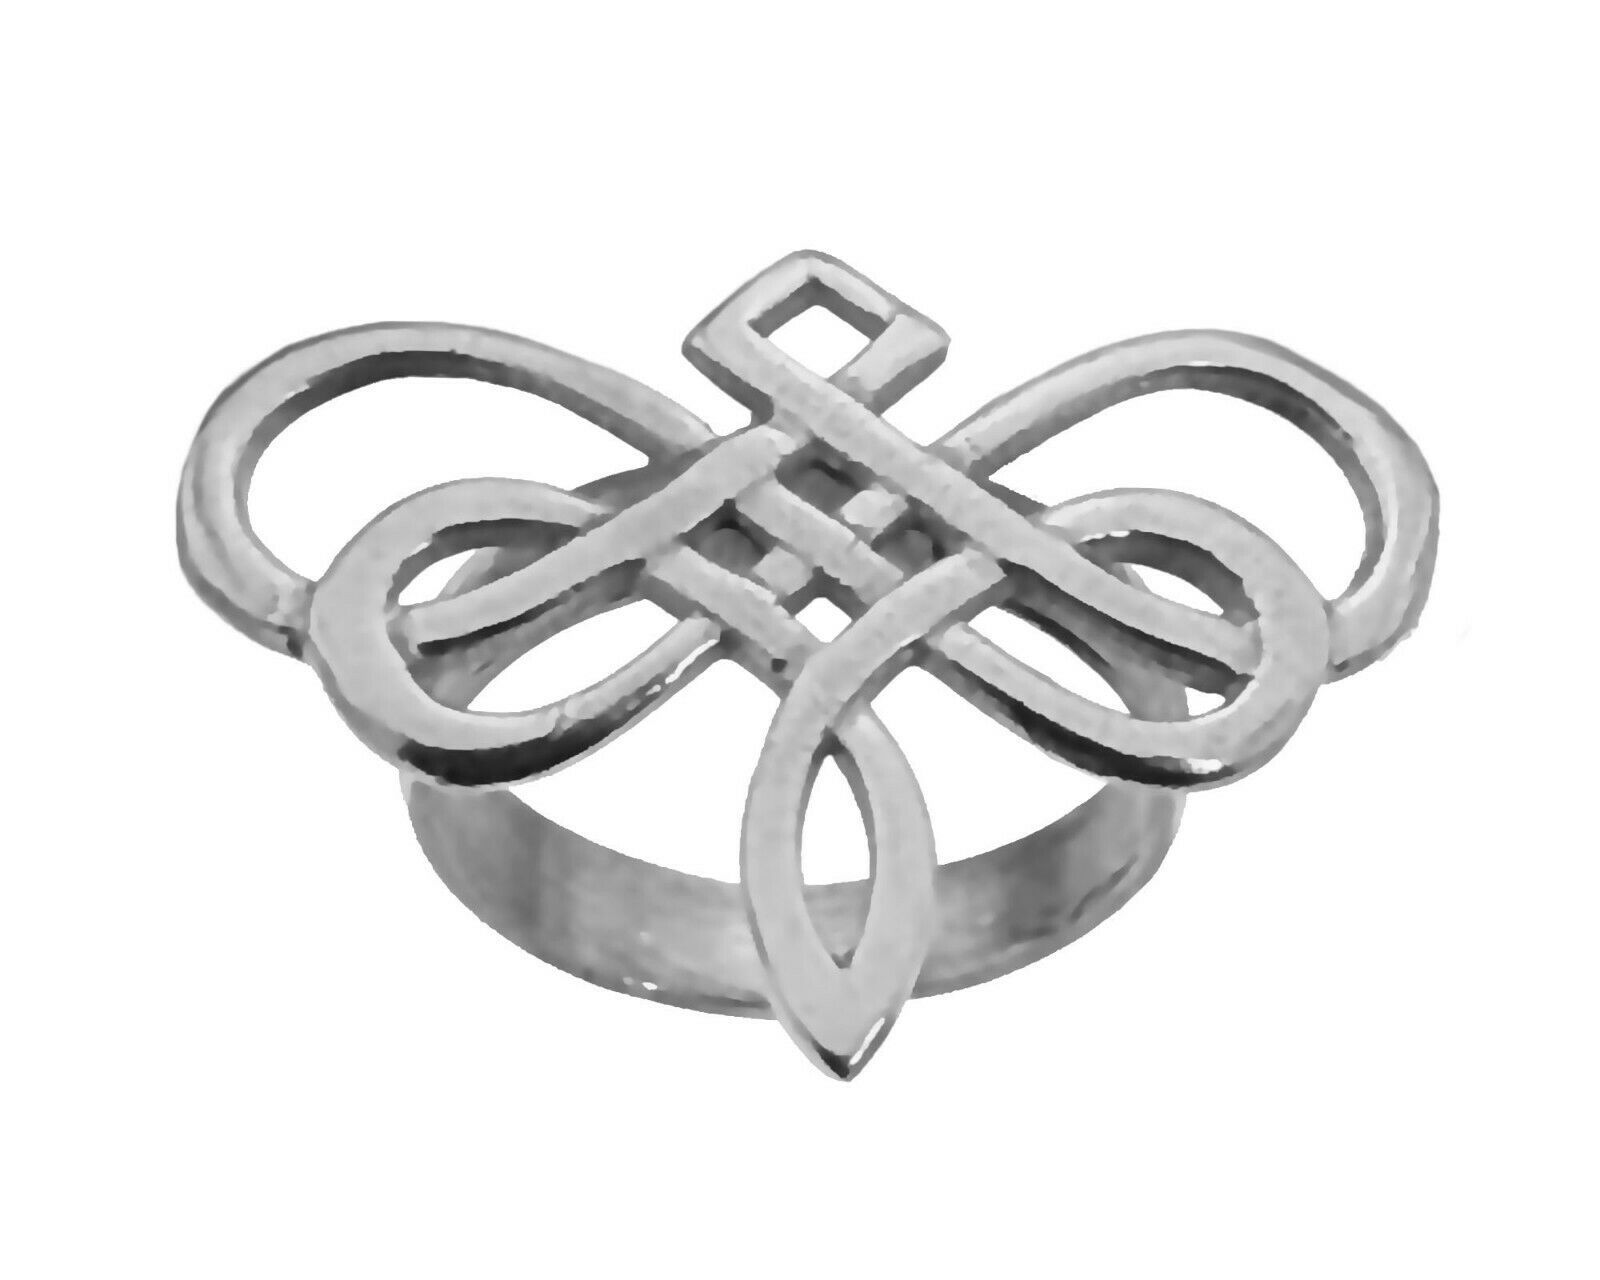 Dragonfly Ring Goddess Celtic Infinity knot work Sterling silver 925 Jewelry New